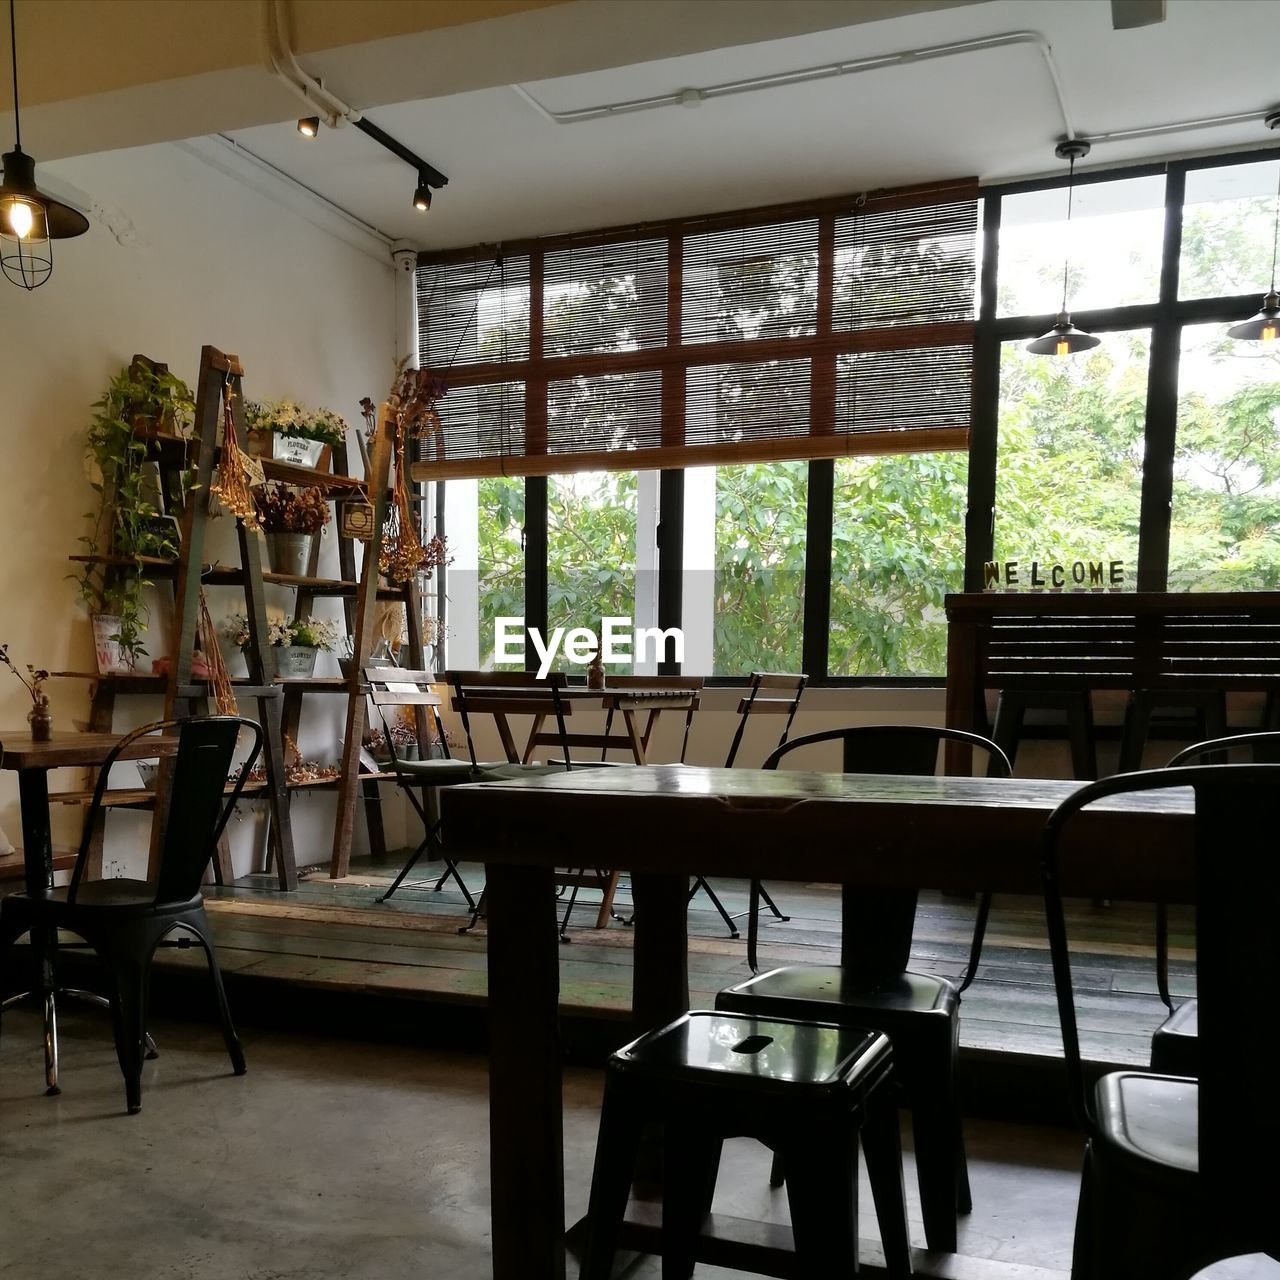 seat, window, table, indoors, chair, absence, no people, furniture, empty, day, business, restaurant, glass - material, ceiling, wood - material, domestic room, flooring, transparent, lighting equipment, setting